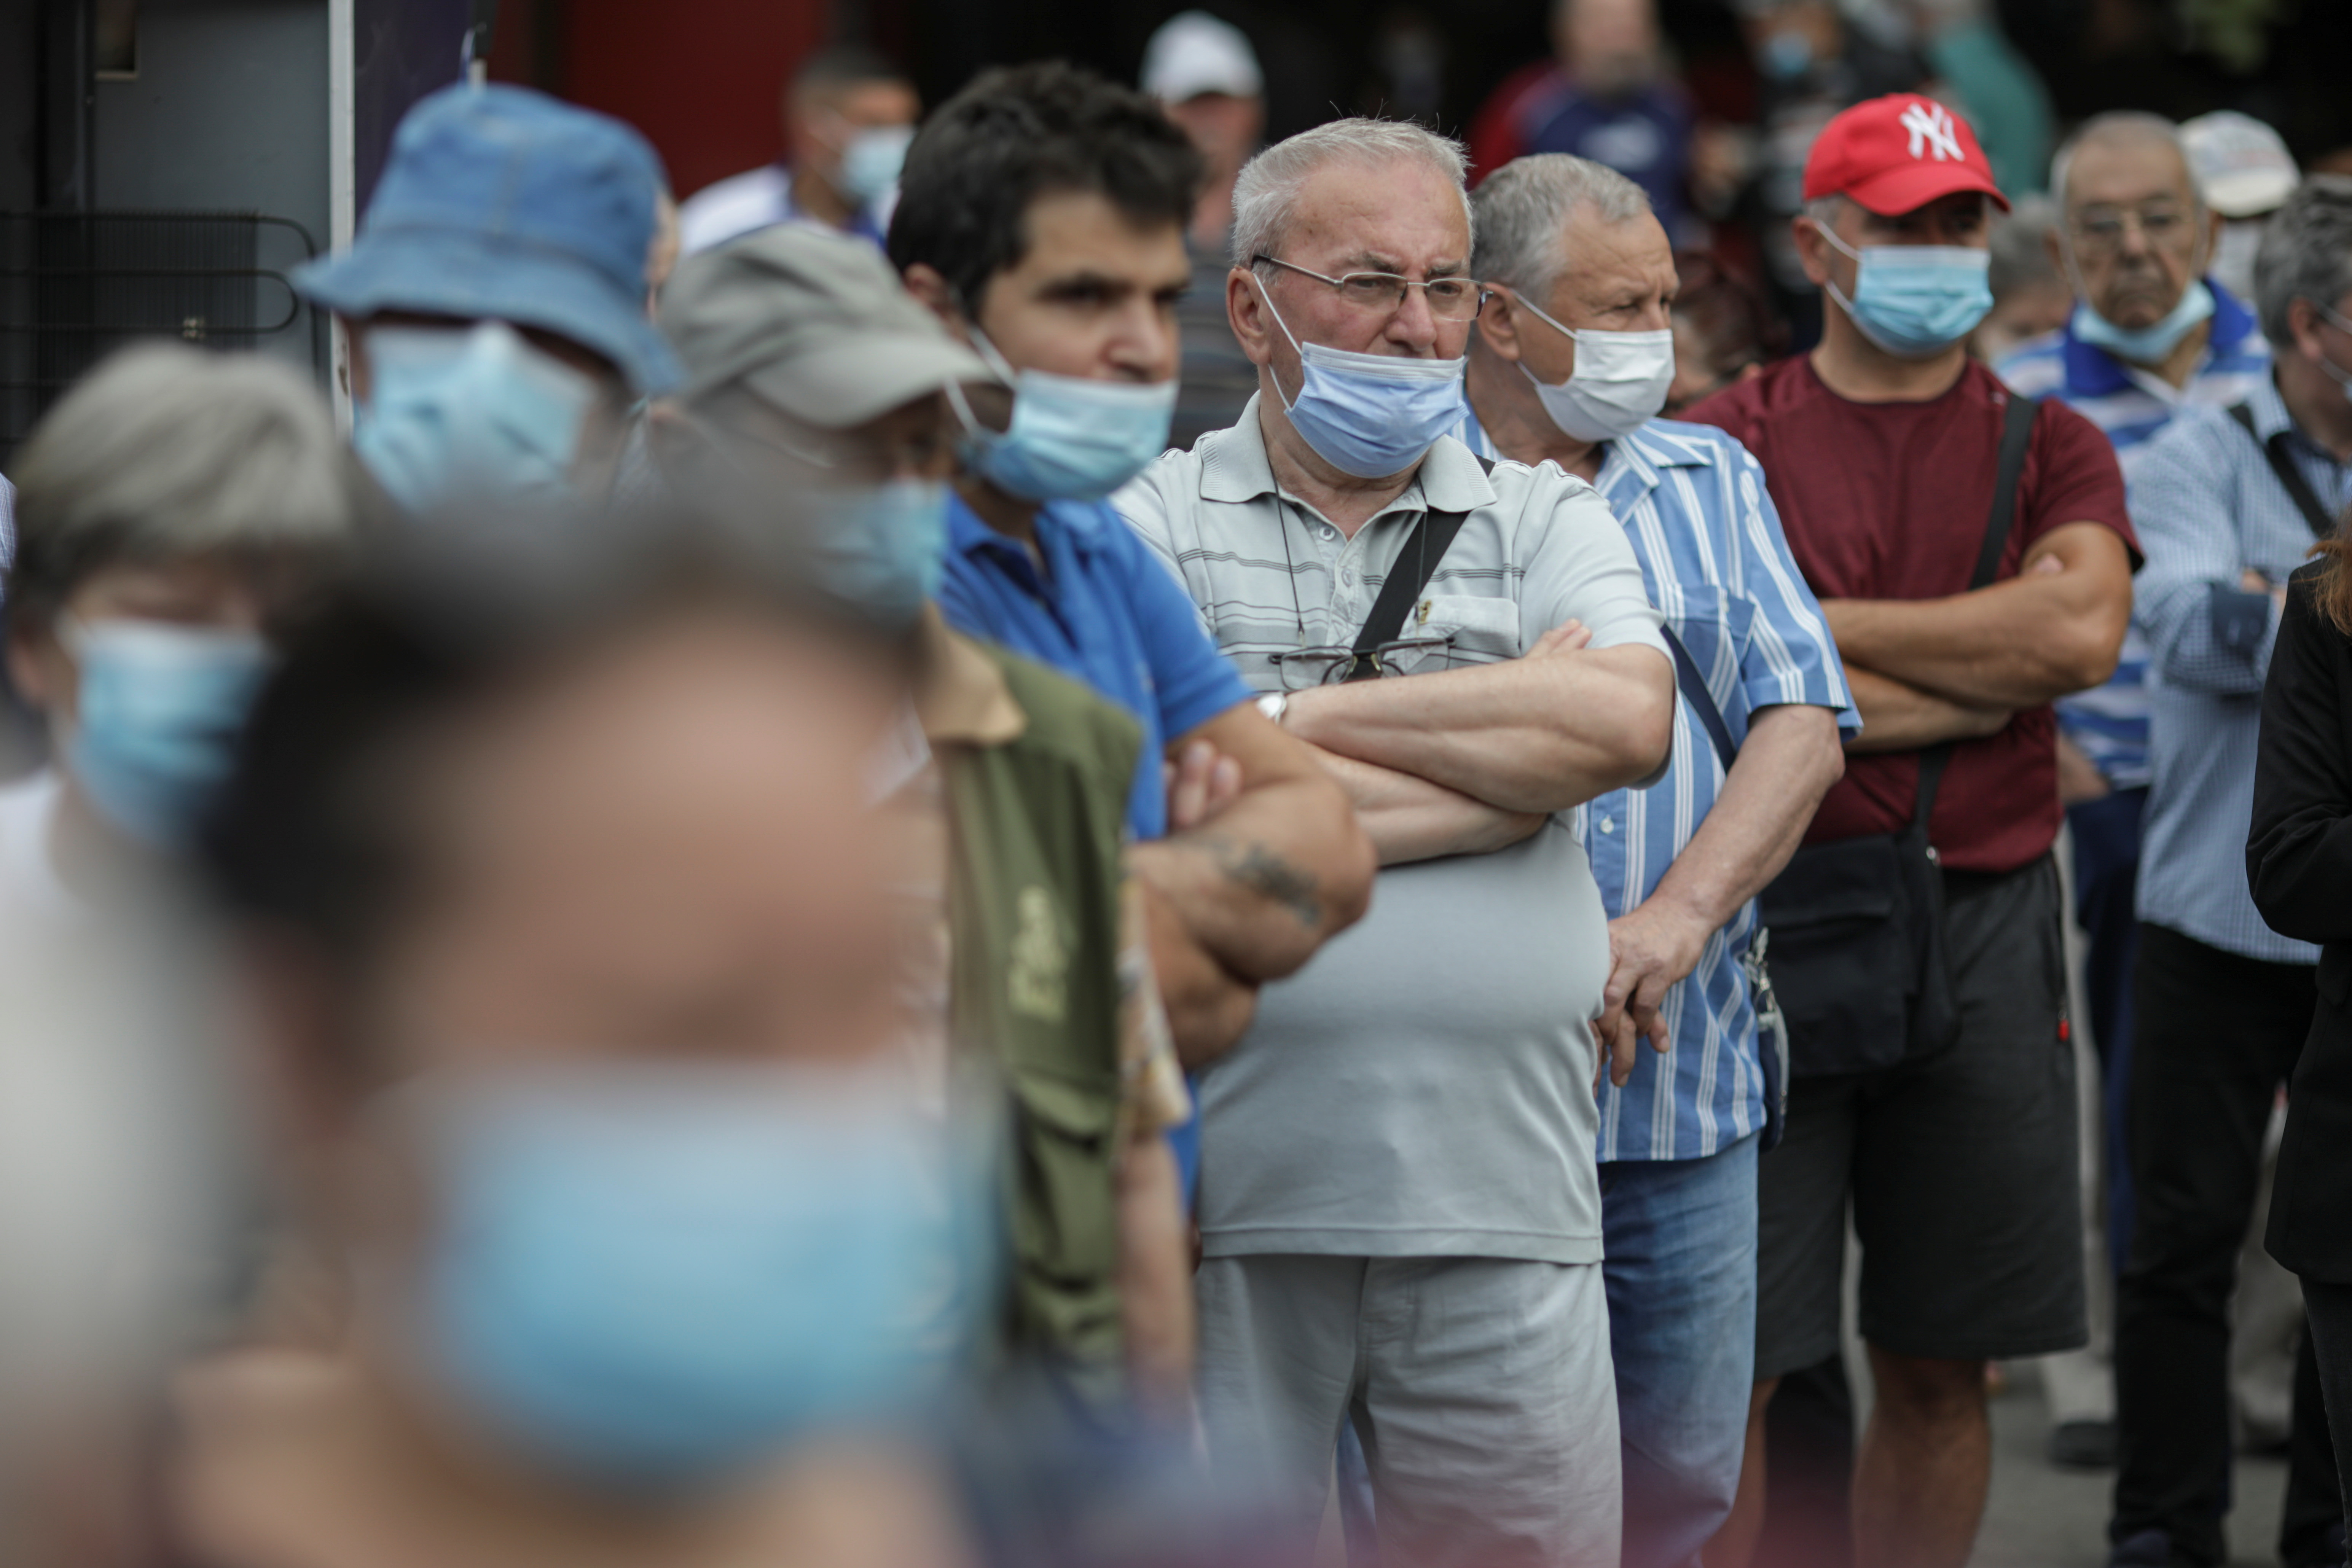 People wait in line to receive a COVID-19 vaccine at a mobile vaccination center in Bucharest, Romania, June 11, 2021. Inquam Photos/Octav Ganea via REUTERS